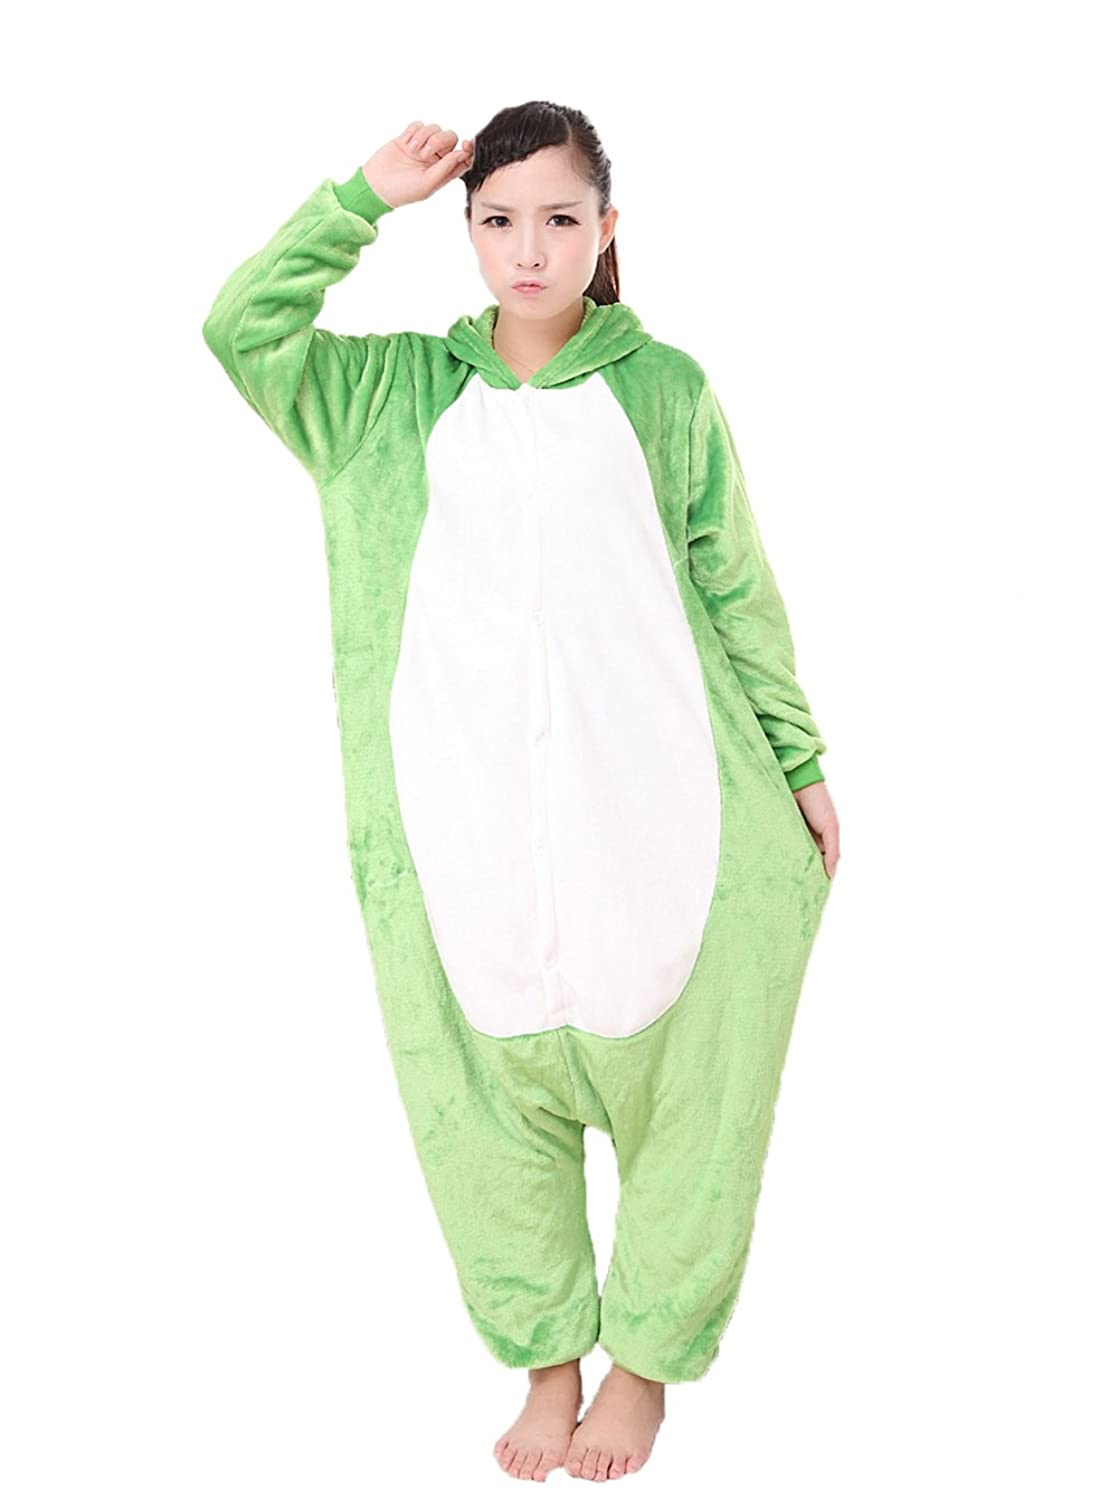 Women's Green Frog Onesie Adult Pajamas Cosplay Costume